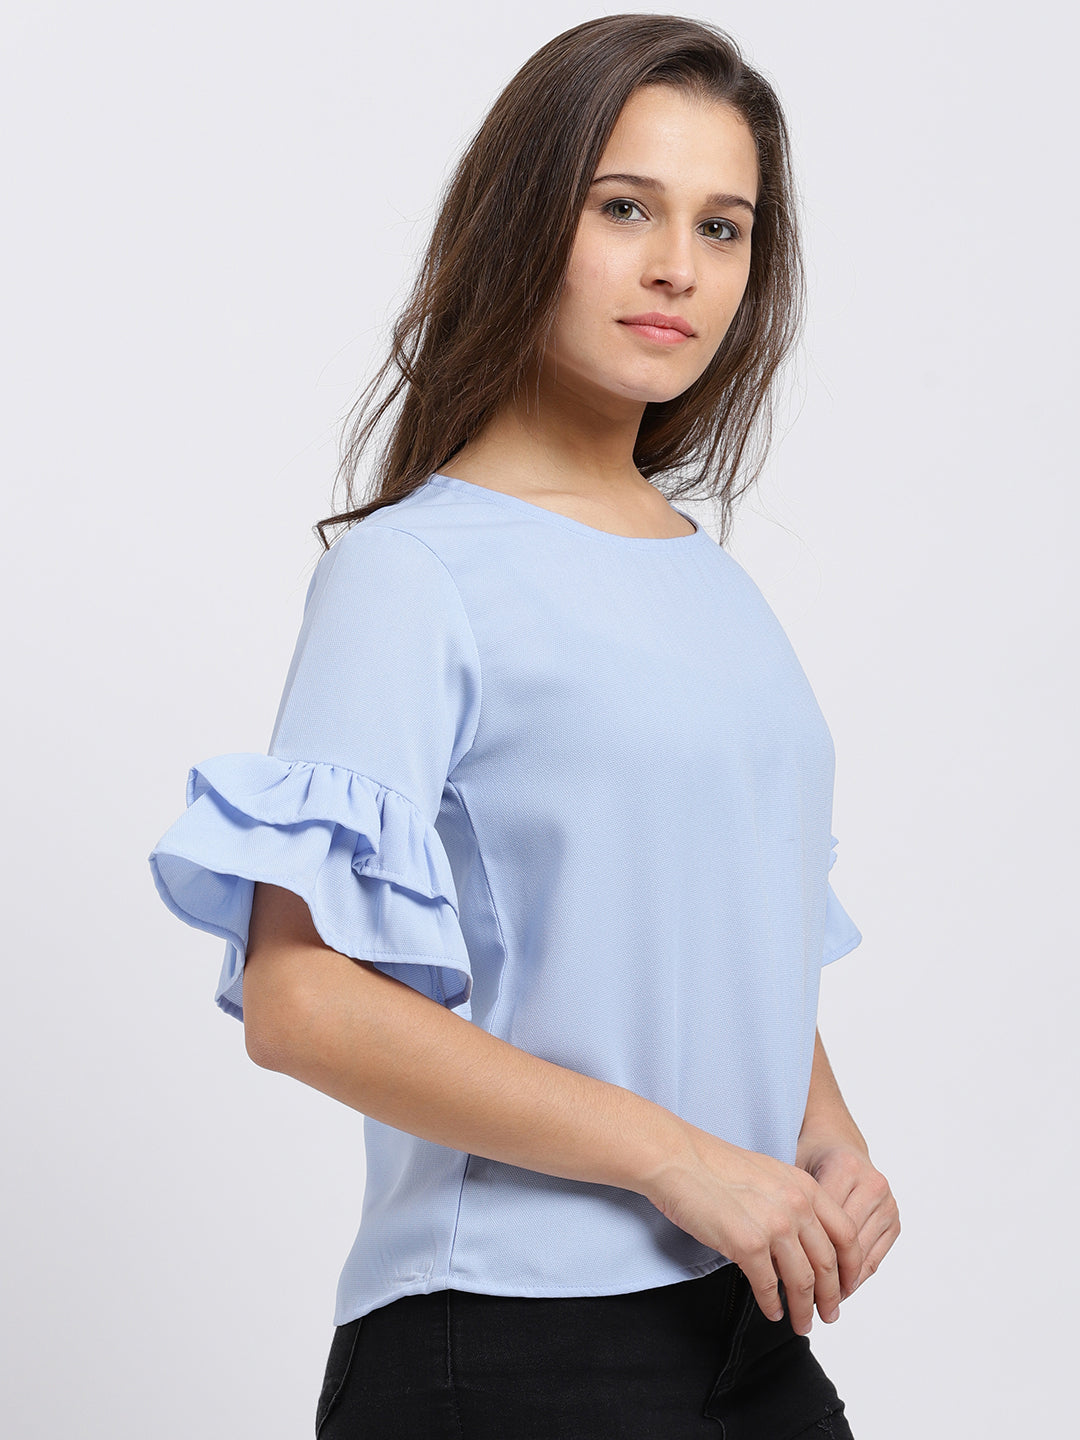 Short Bell Sleeves Solid Top